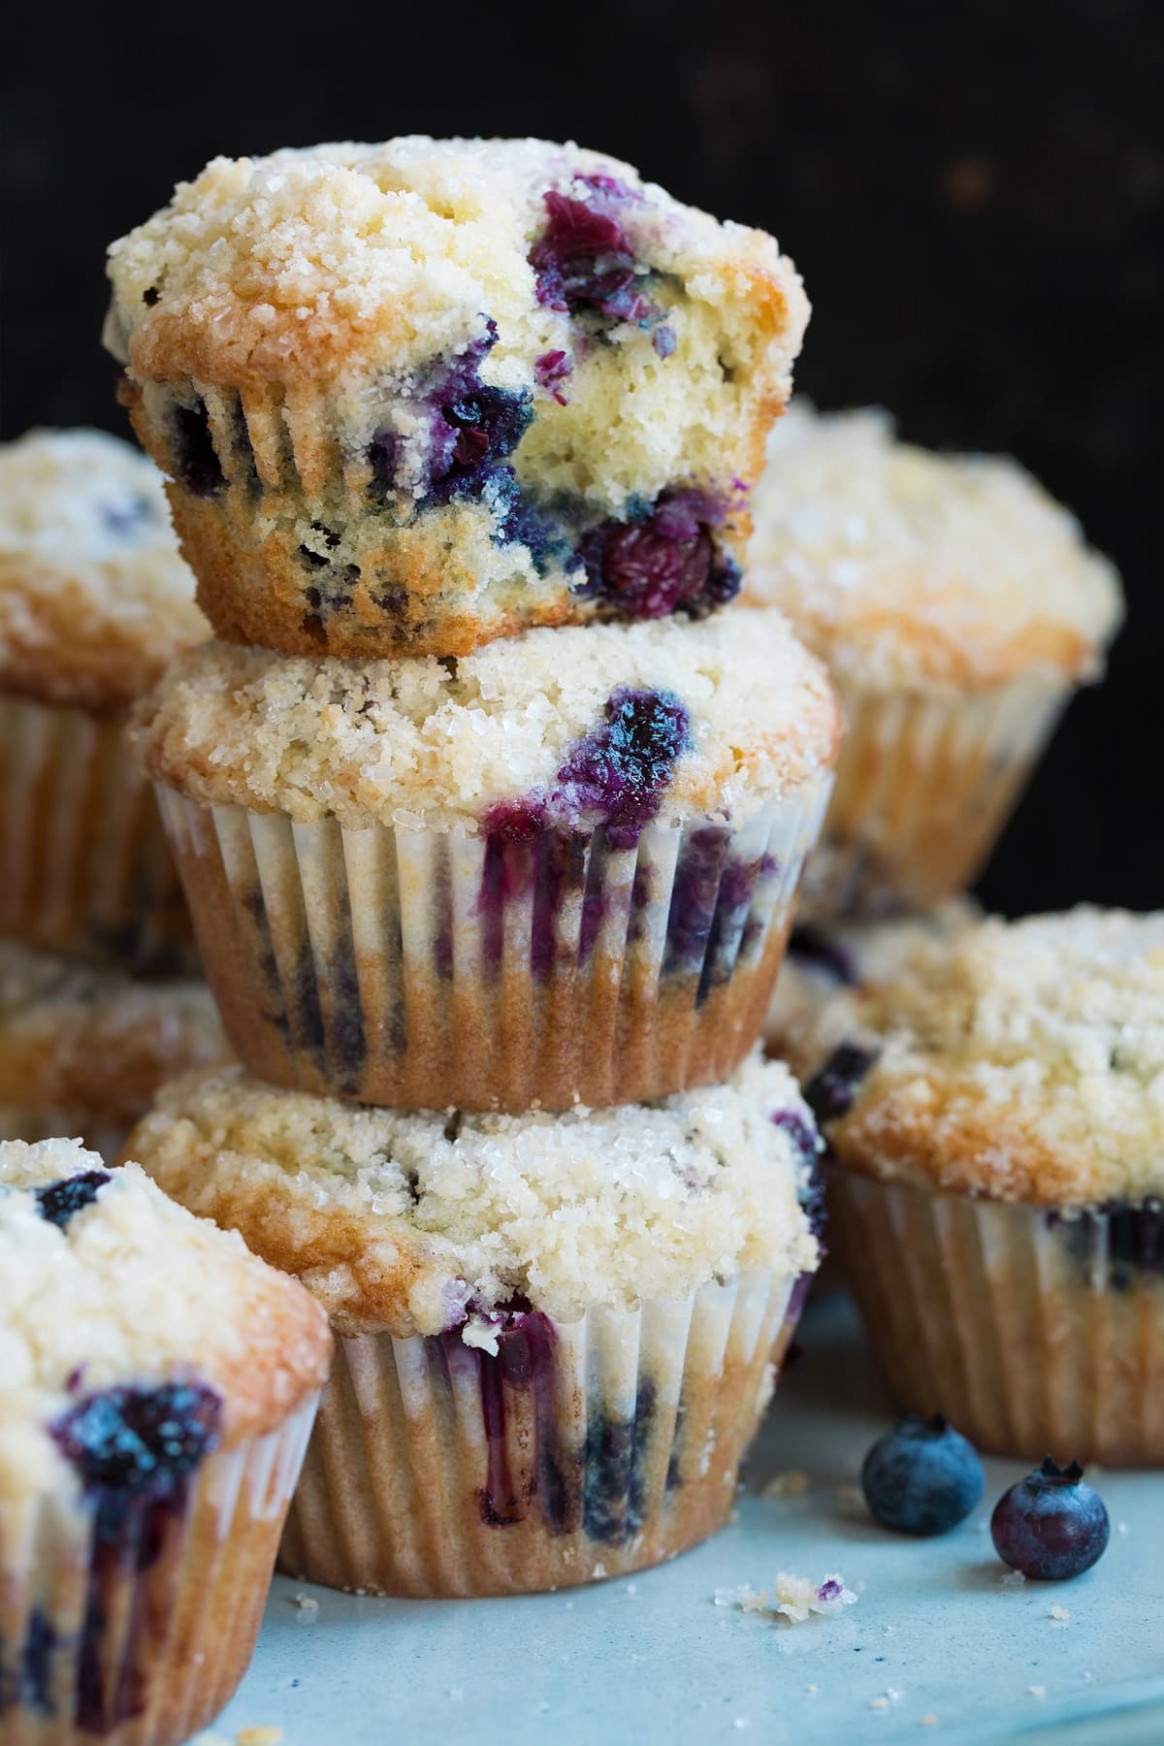 Best Blueberry Muffins Recipe - Cooking Classy - recipes blueberry muffins healthy